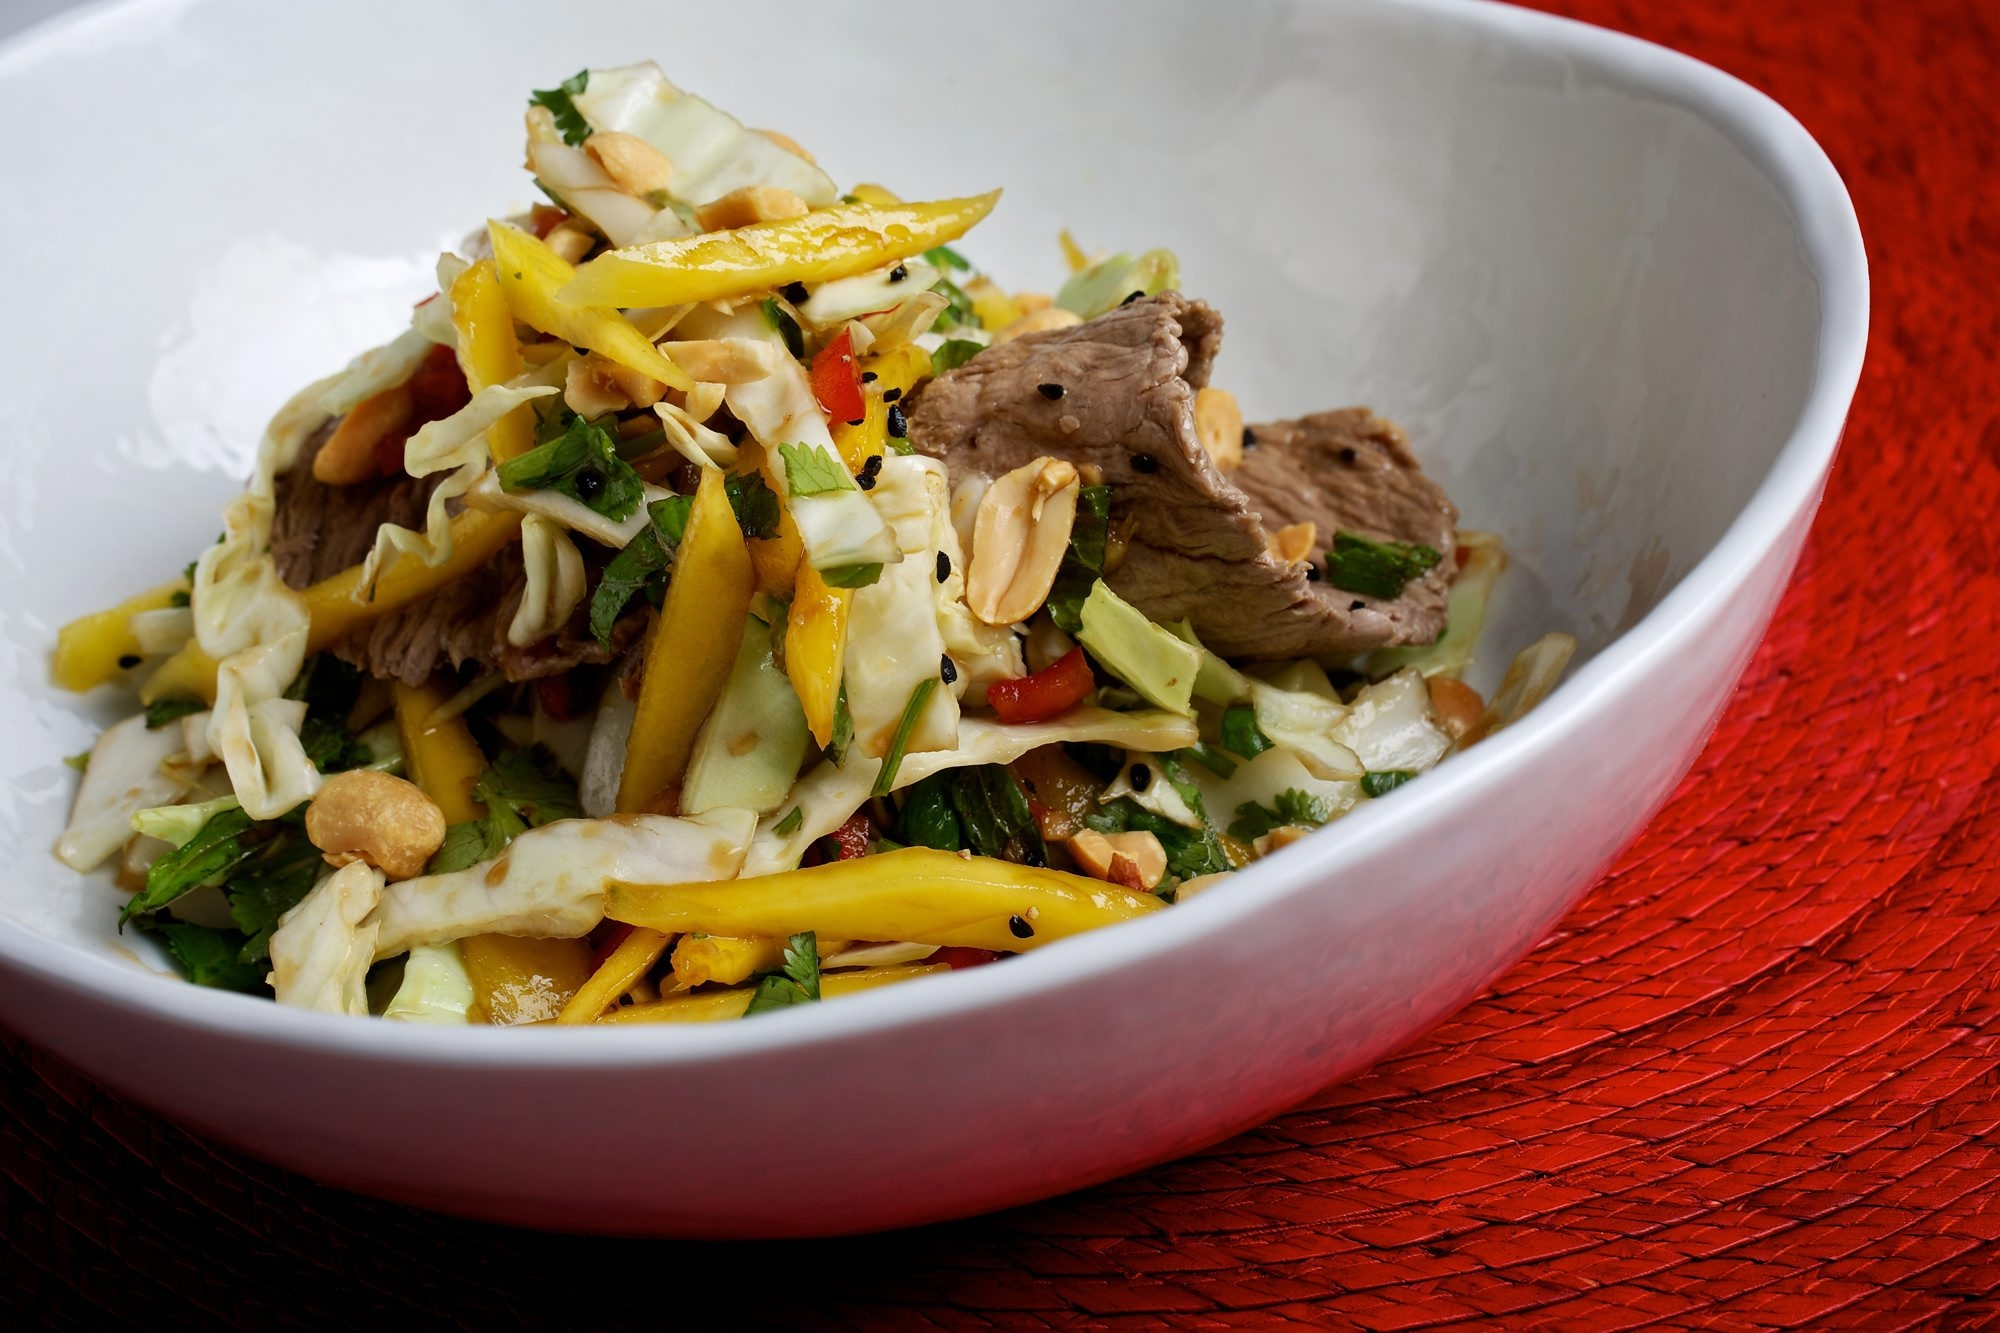 A good fish sauce adds depth to the vinaigrette for this Lime Beef Salad.